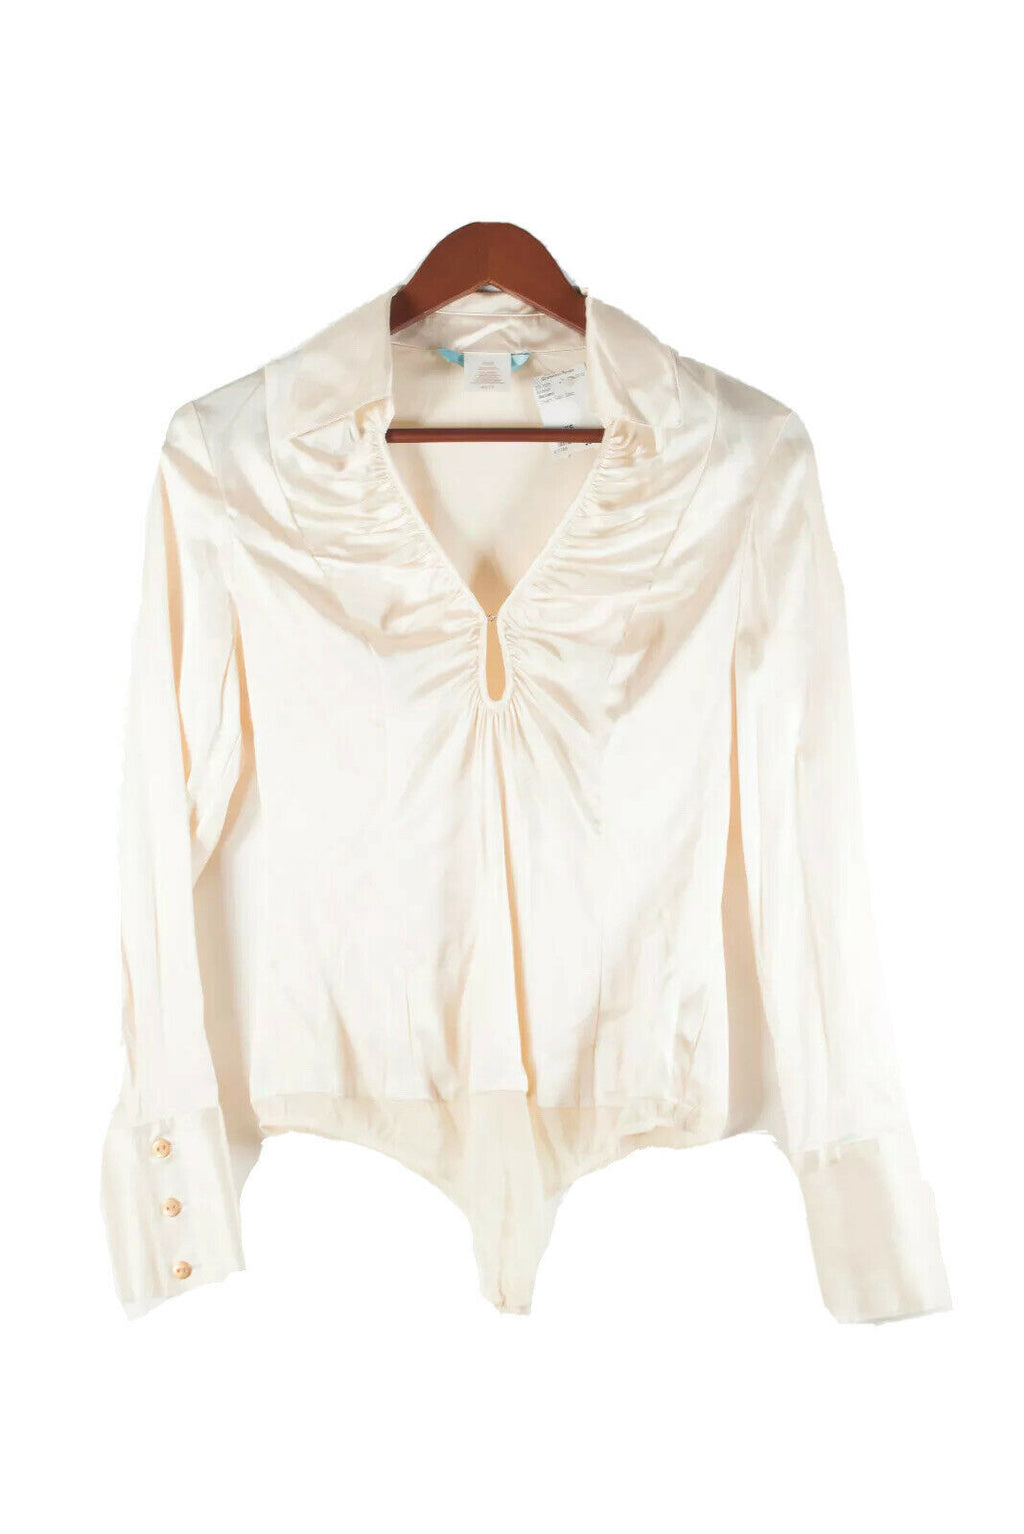 Marciano Women XS Ivory Cream Bodysuit Silk Top